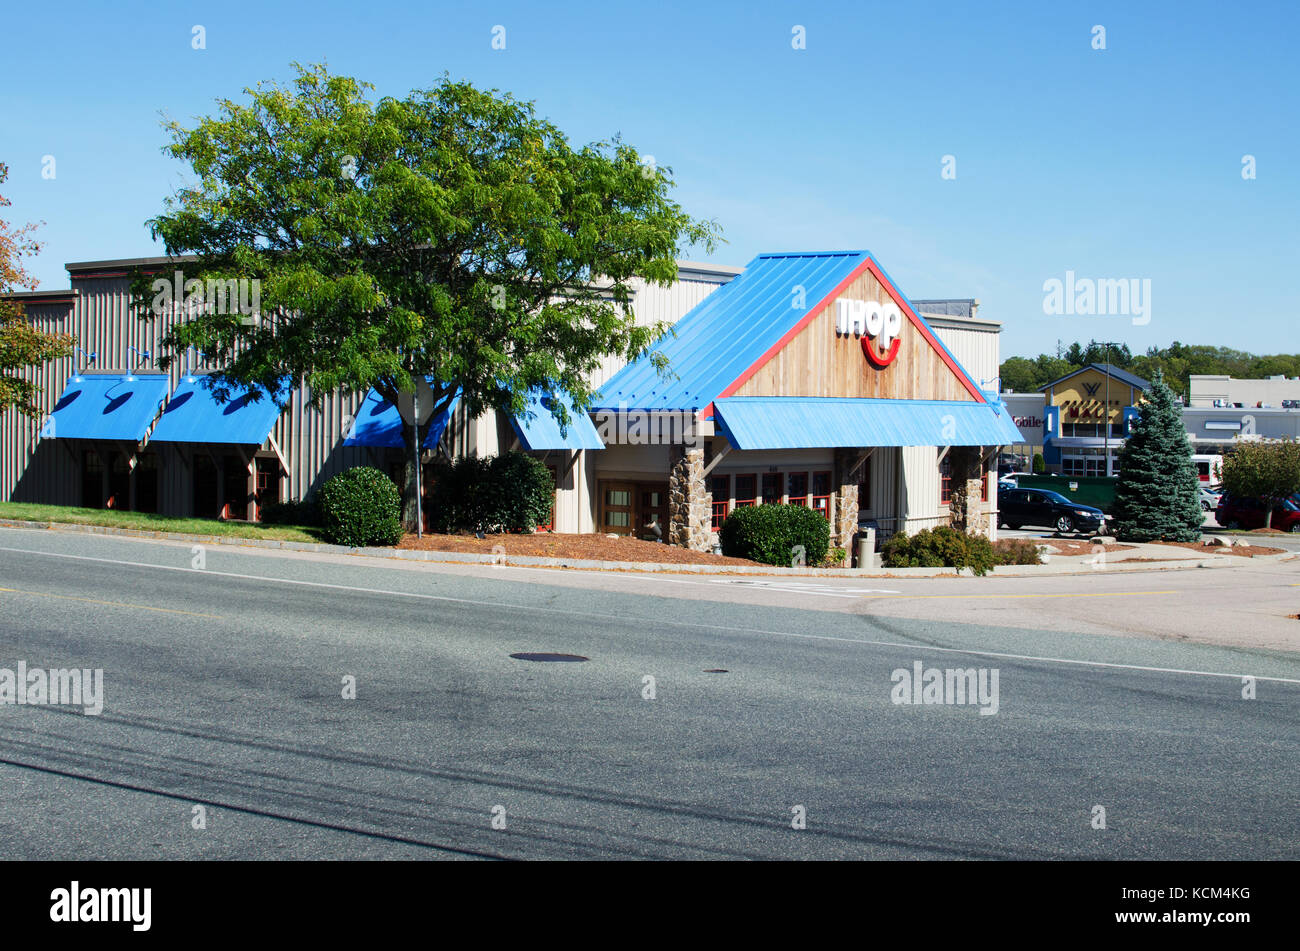 restaurant restaurants chain exterior stock photos u0026 restaurant